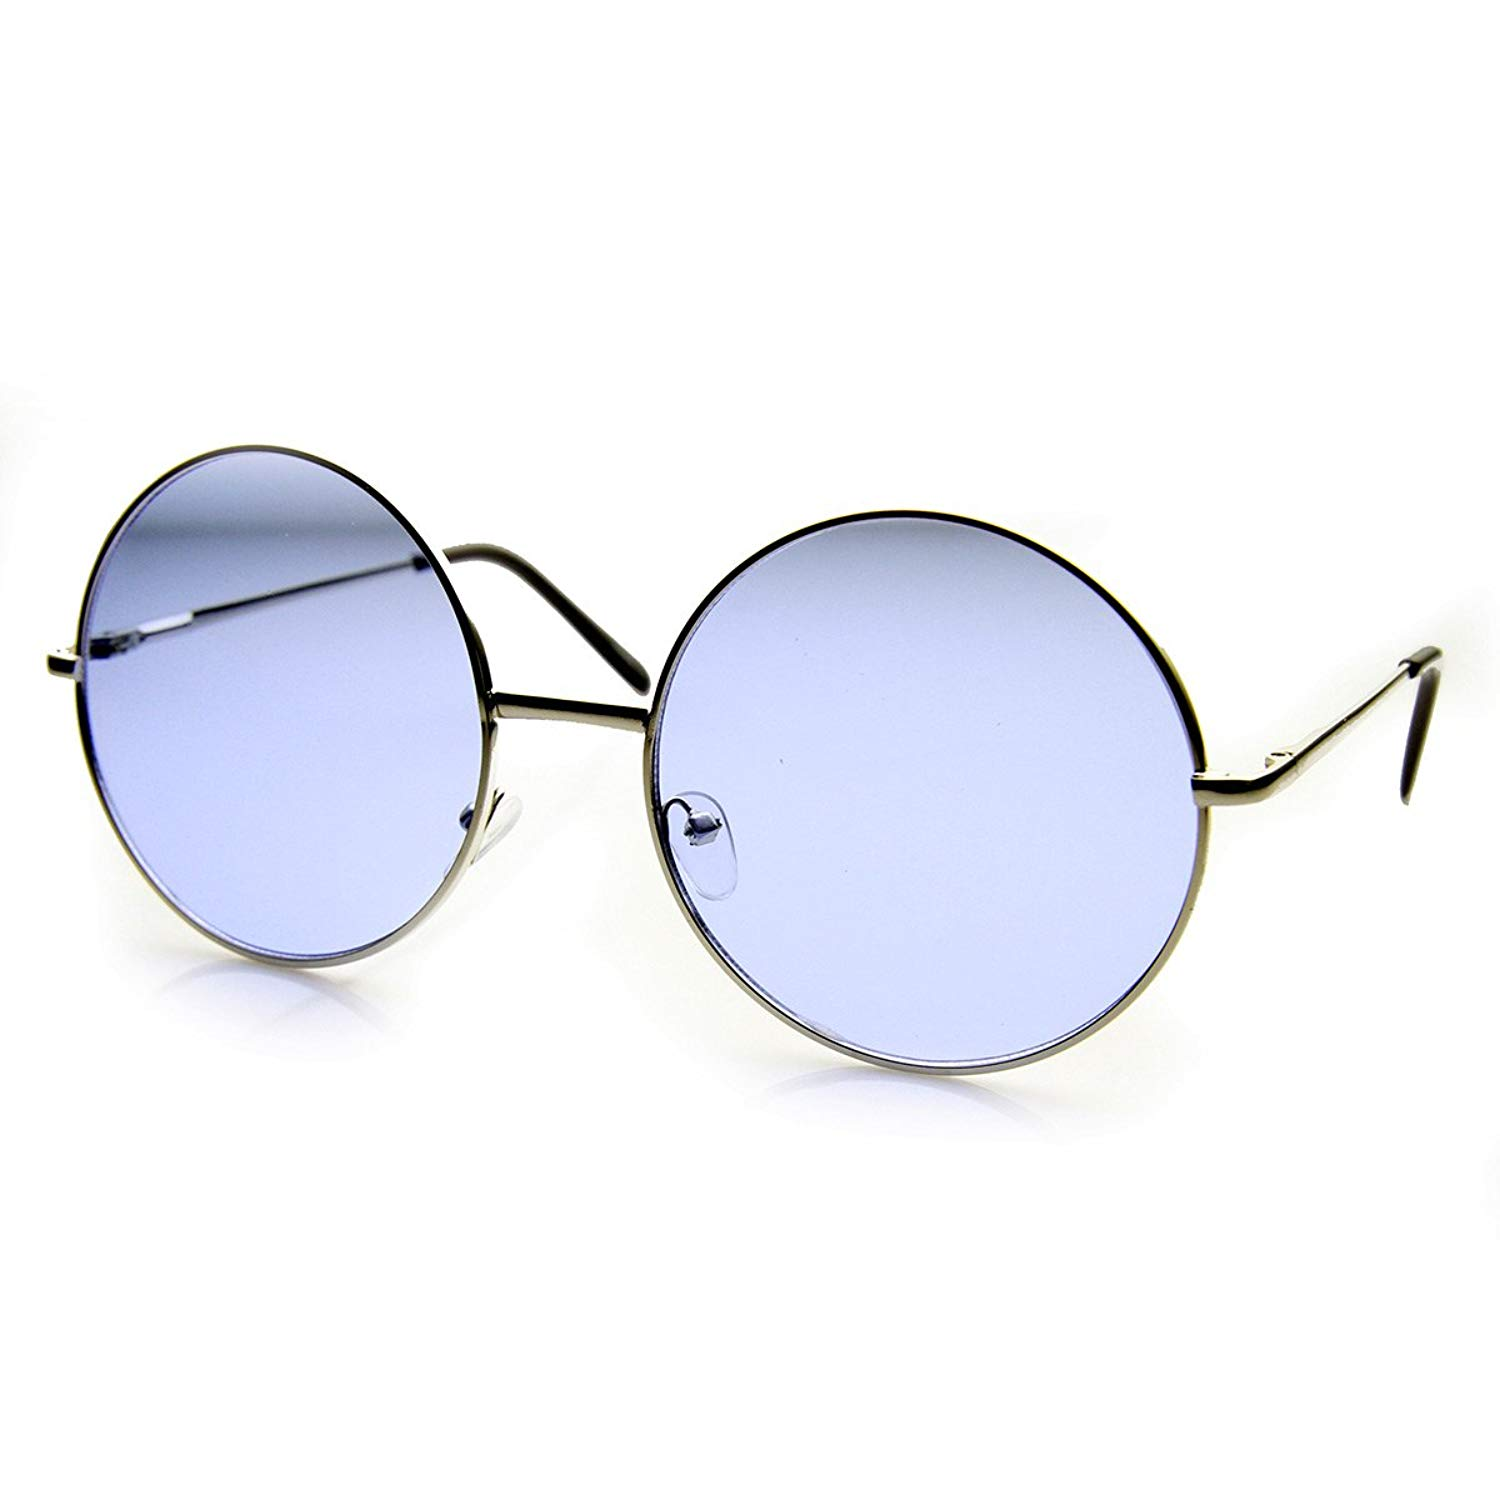 31c72e9c9c9 Get Quotations · zeroUV - Womens Fashion Oversized Color Tint Lens Metal Circle  Round Sunglasses